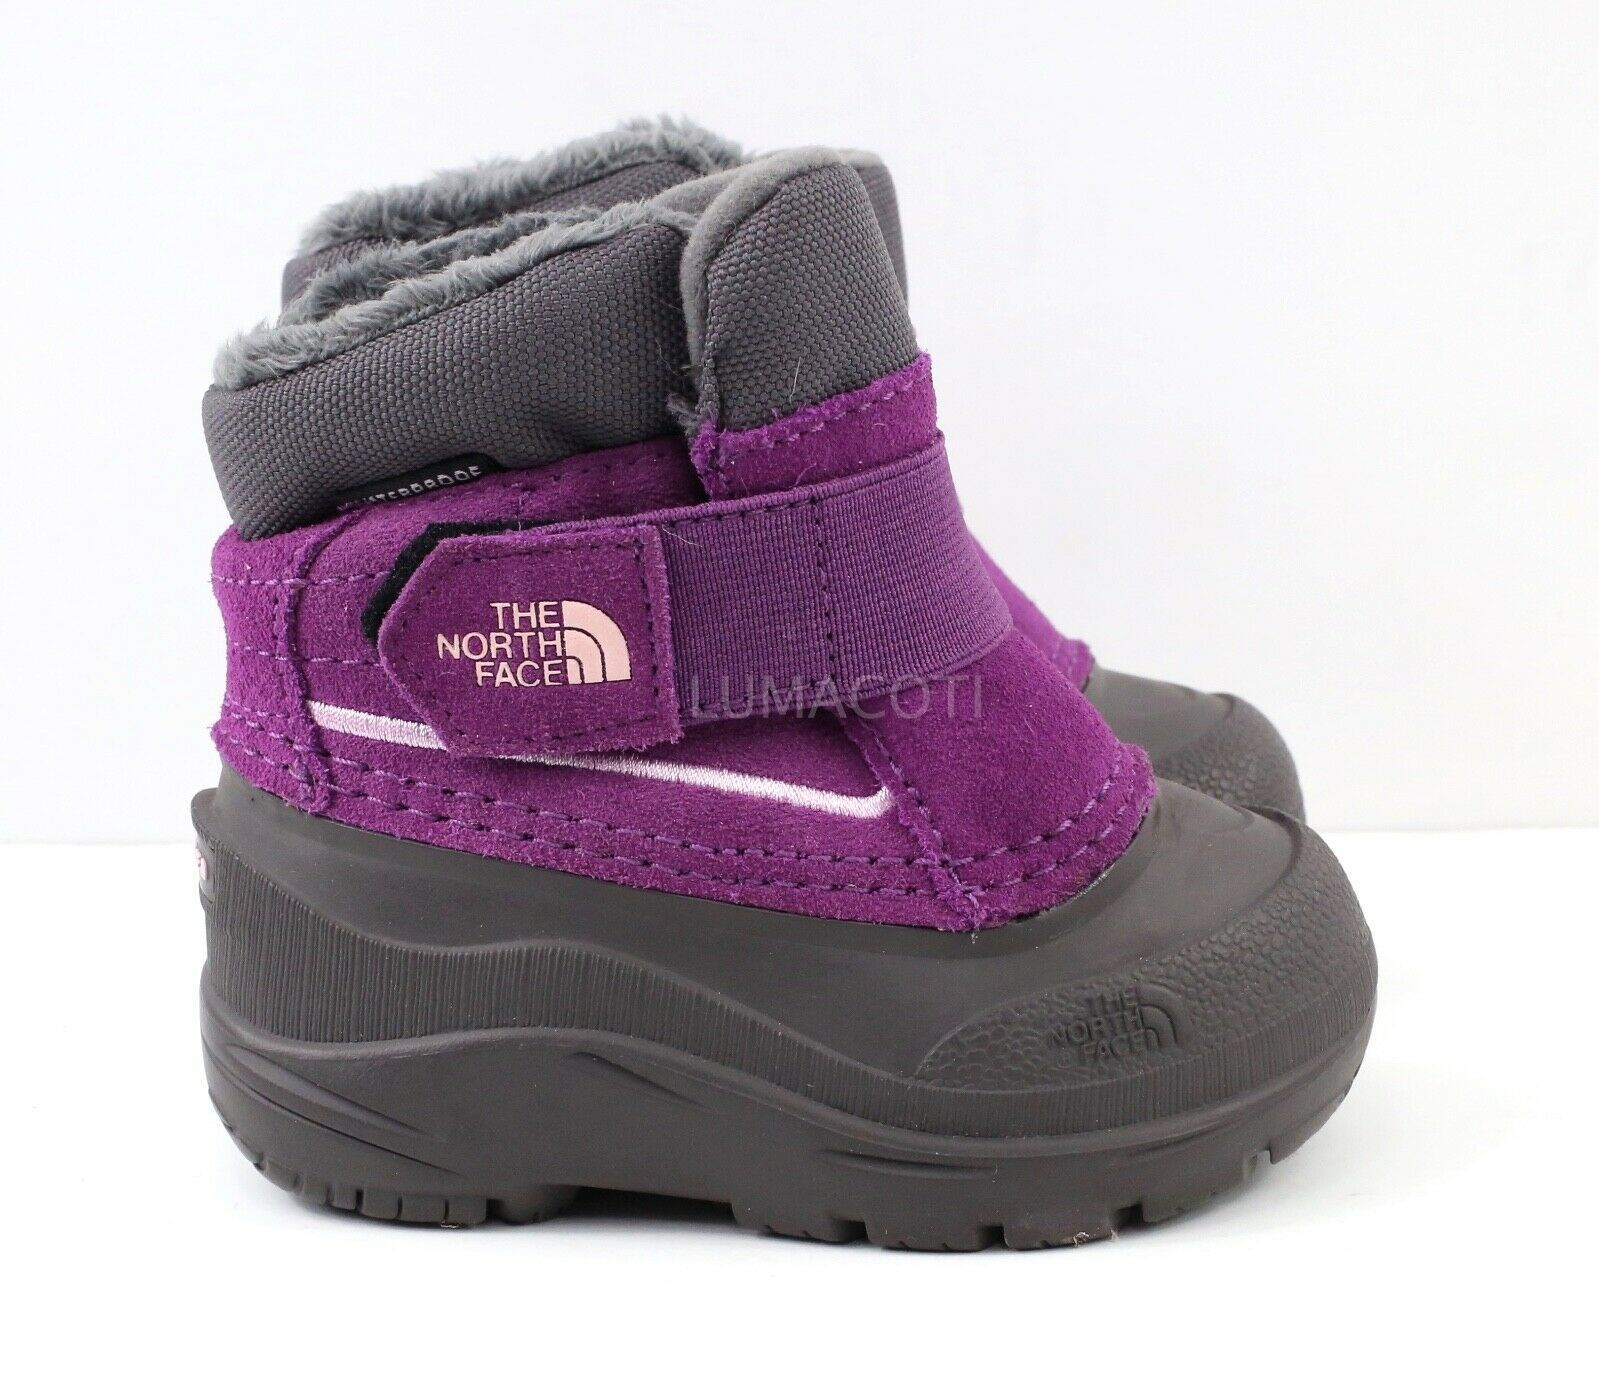 Toddler The North Face Alpenglow Boots - Icee Blue/ Q-Silver Grey Size 7